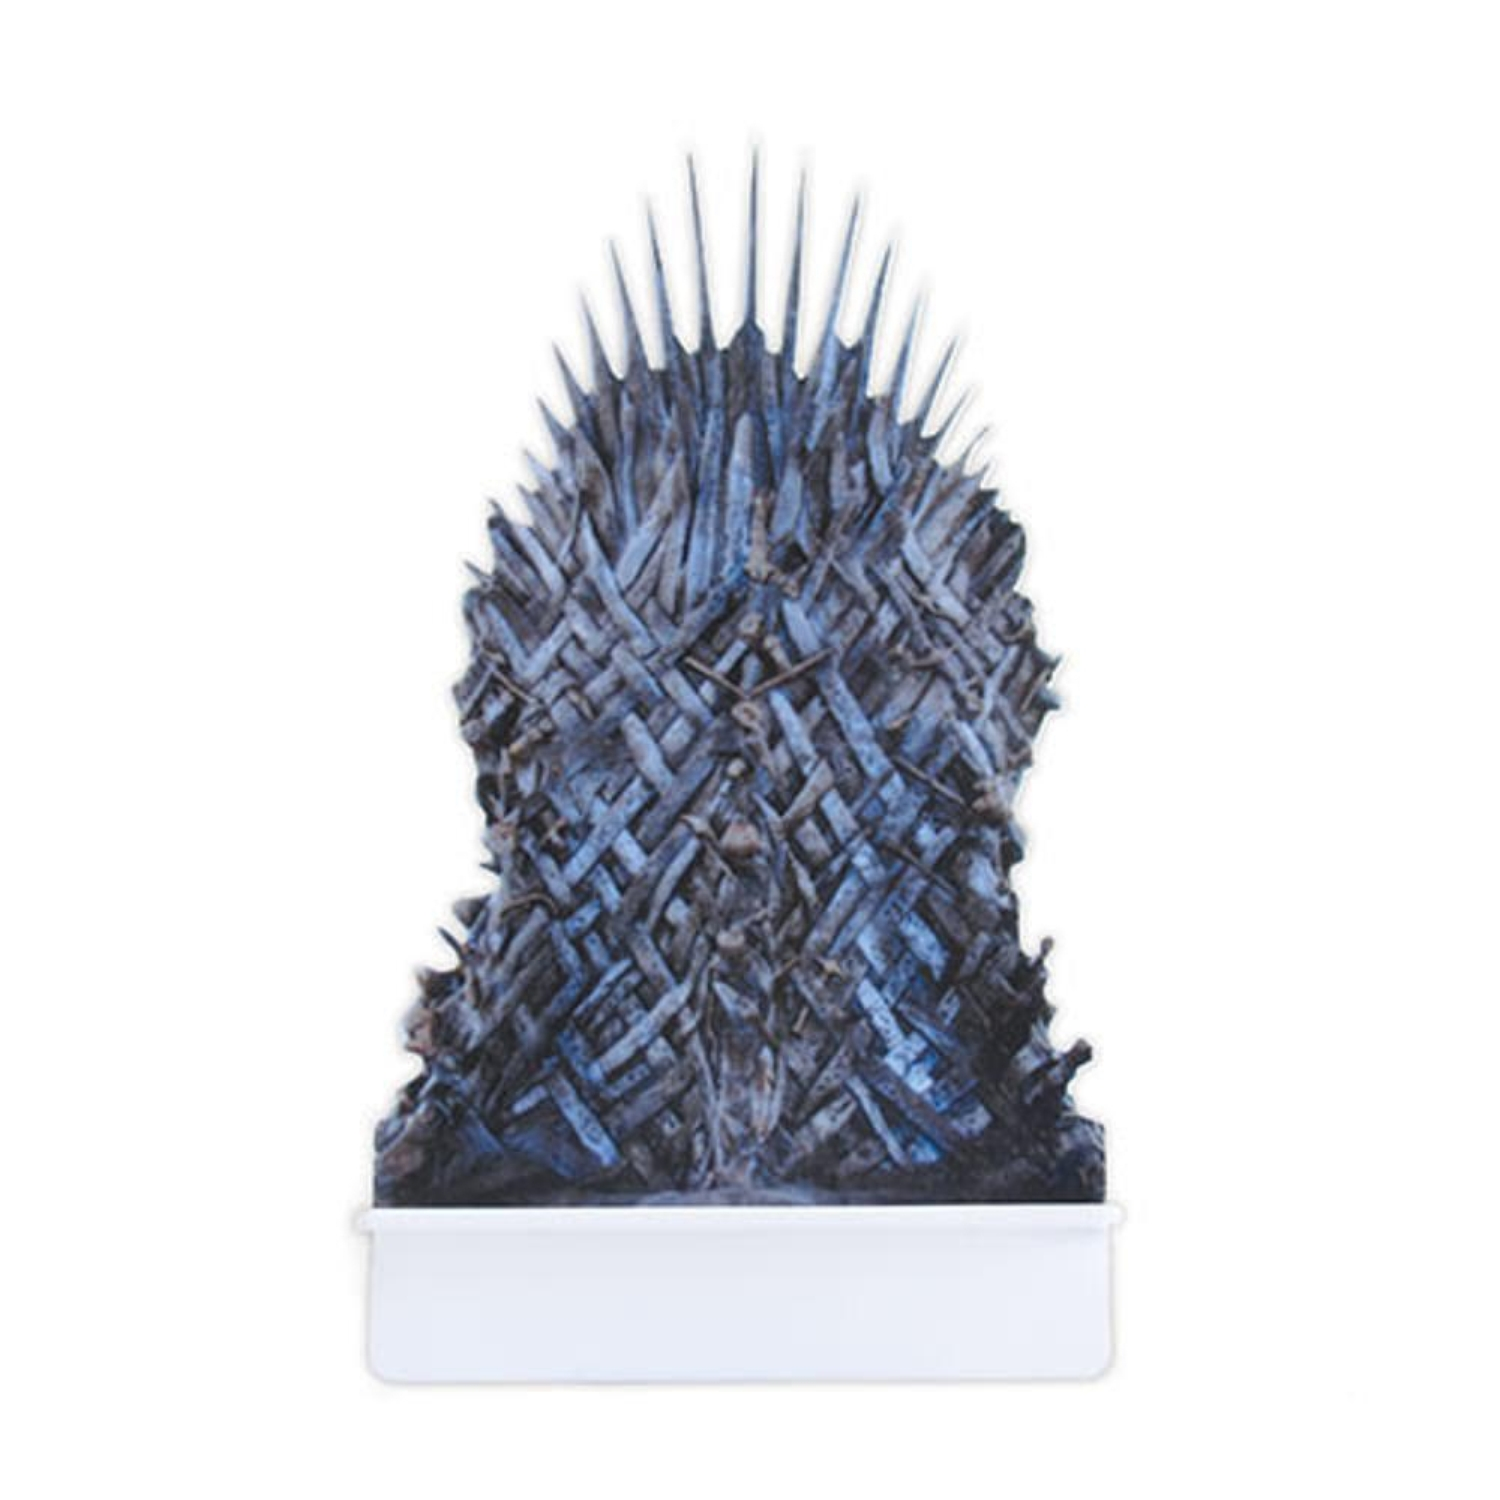 Subna_Porta Celular Guerra Dos Tronos Game Of Thrones